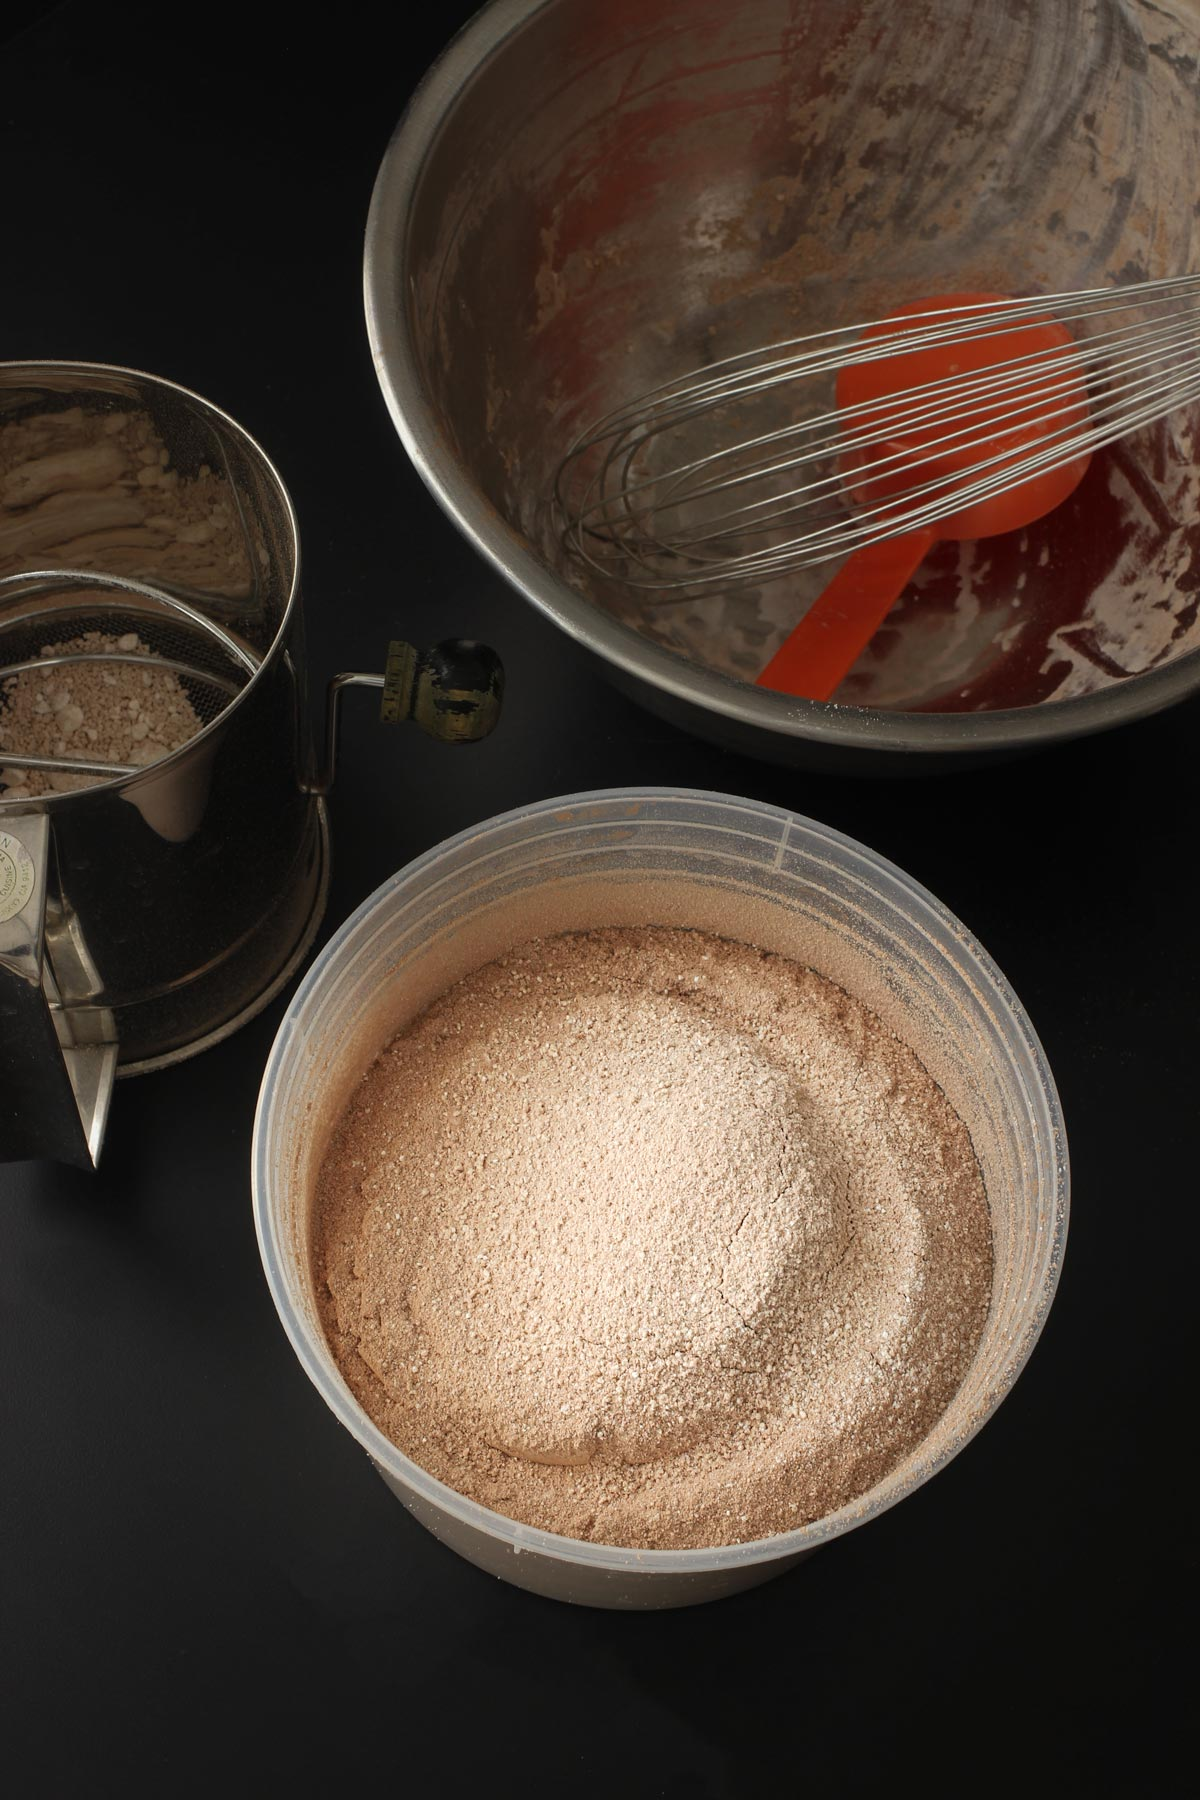 partially empty sifter, empty bowl, whisk, and tub of cocoa mix on black table